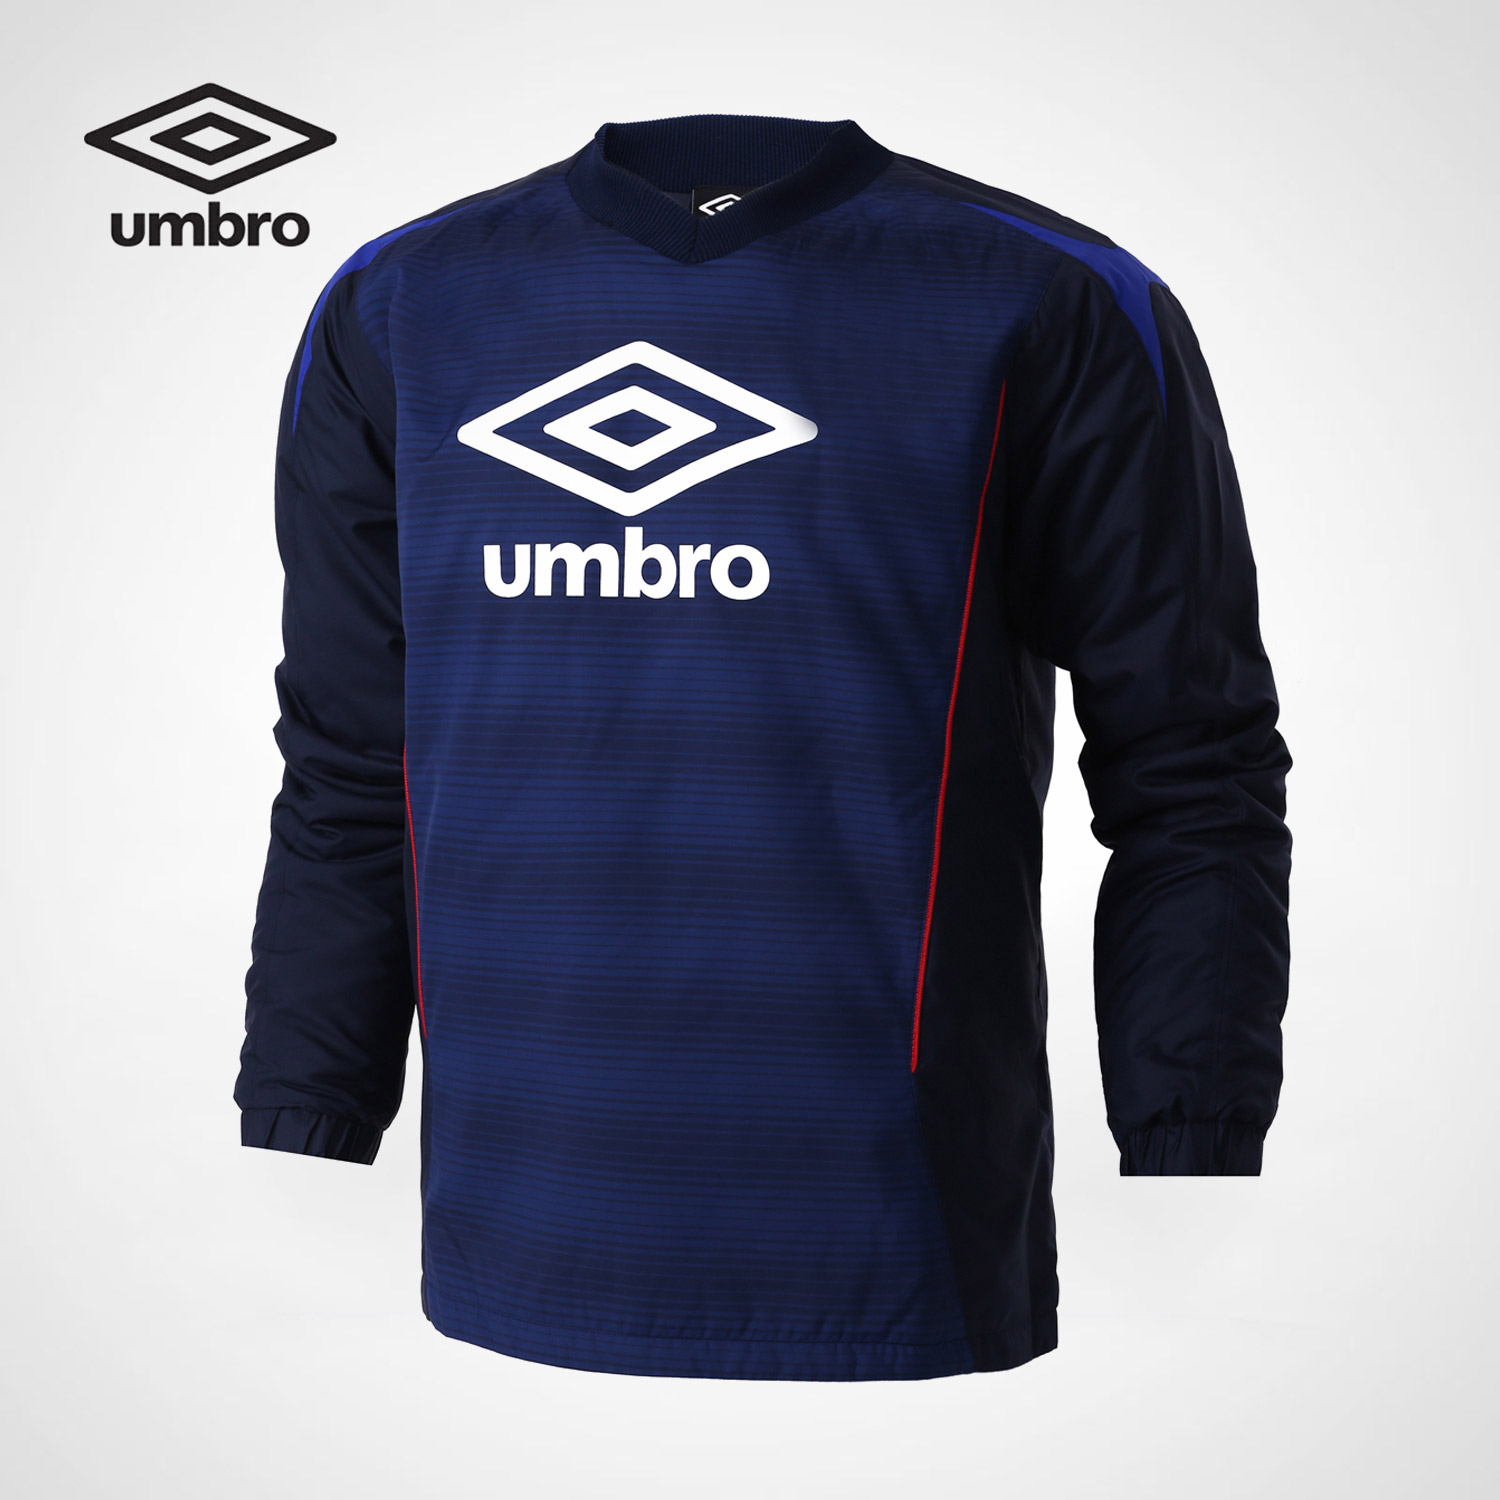 Umbro 2018 Men Long Sleeved Soccer Jerseys 100% Polyester Slim Fit Short-sleeve Men Football Shirt Training Sportswear UJB63019 цена 2017